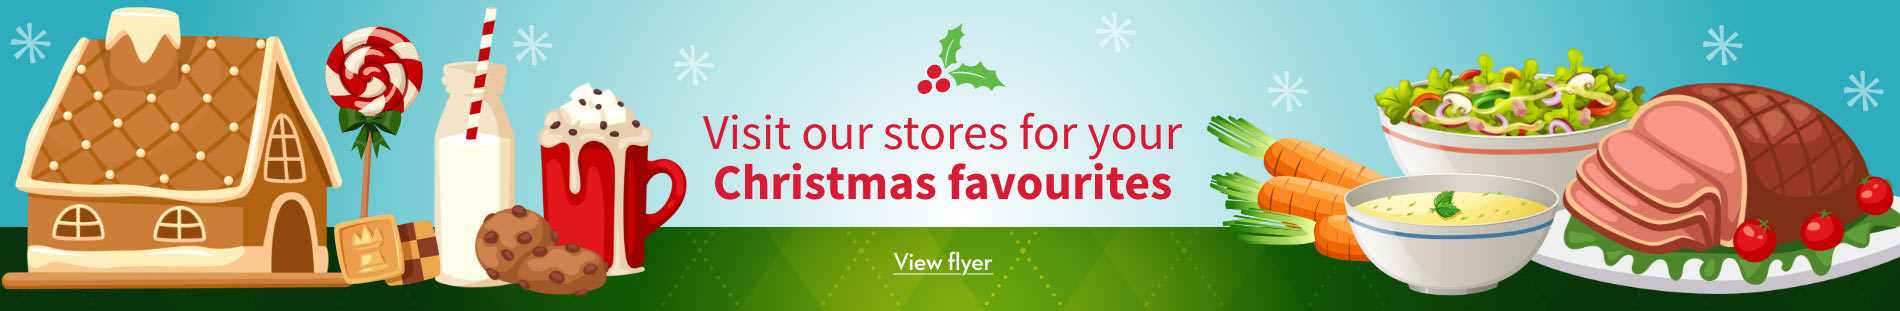 Visit your stores for your Christmas favourites - View flyer